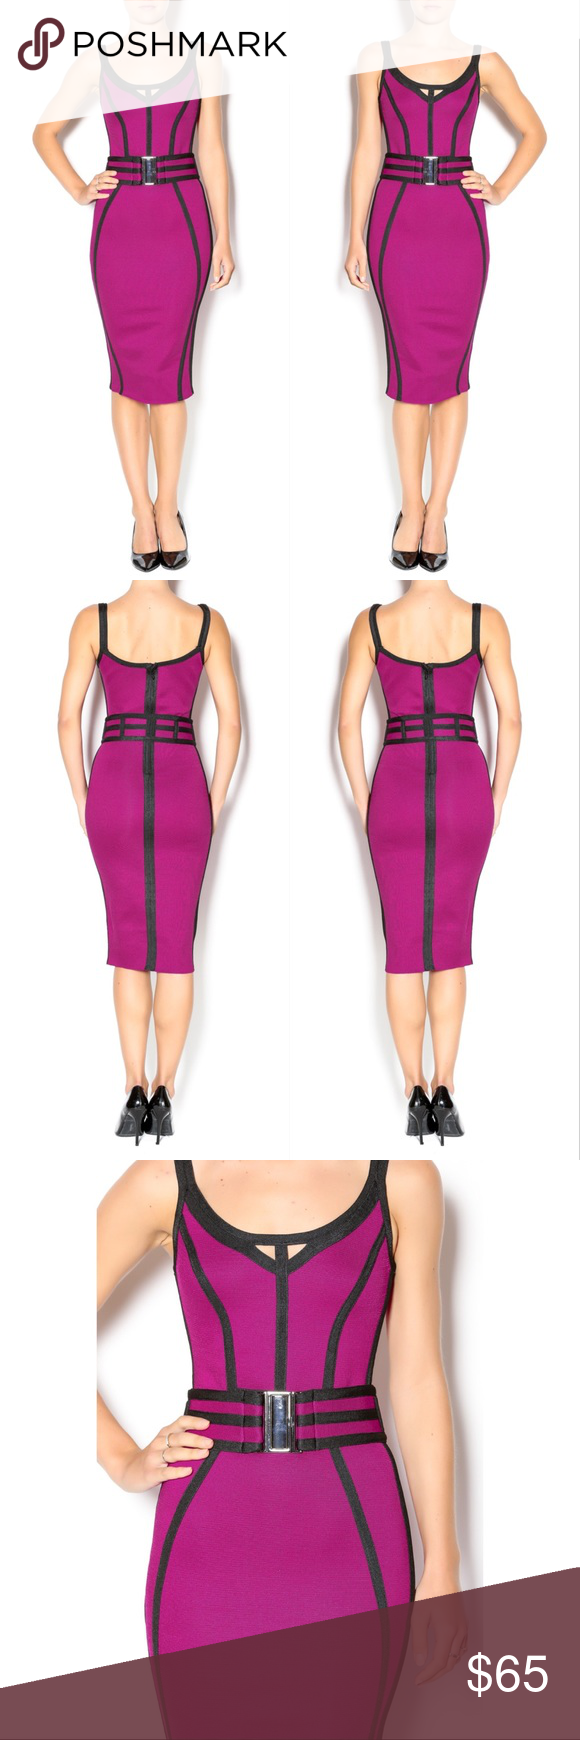 """🌺 Belted Bandage Dress Bandage dress with a belt and black contrast trimming. This dress is stunning and you are sure to look gorgeous in it! Pair with black pumps and a mini handbag.  98% polyester, 2% spandex   Fit is true to size. Model is wearing size S.  Model's height 5'8"""", bust 32"""", waist 25"""", hips 34"""". WOW couture Dresses Midi"""